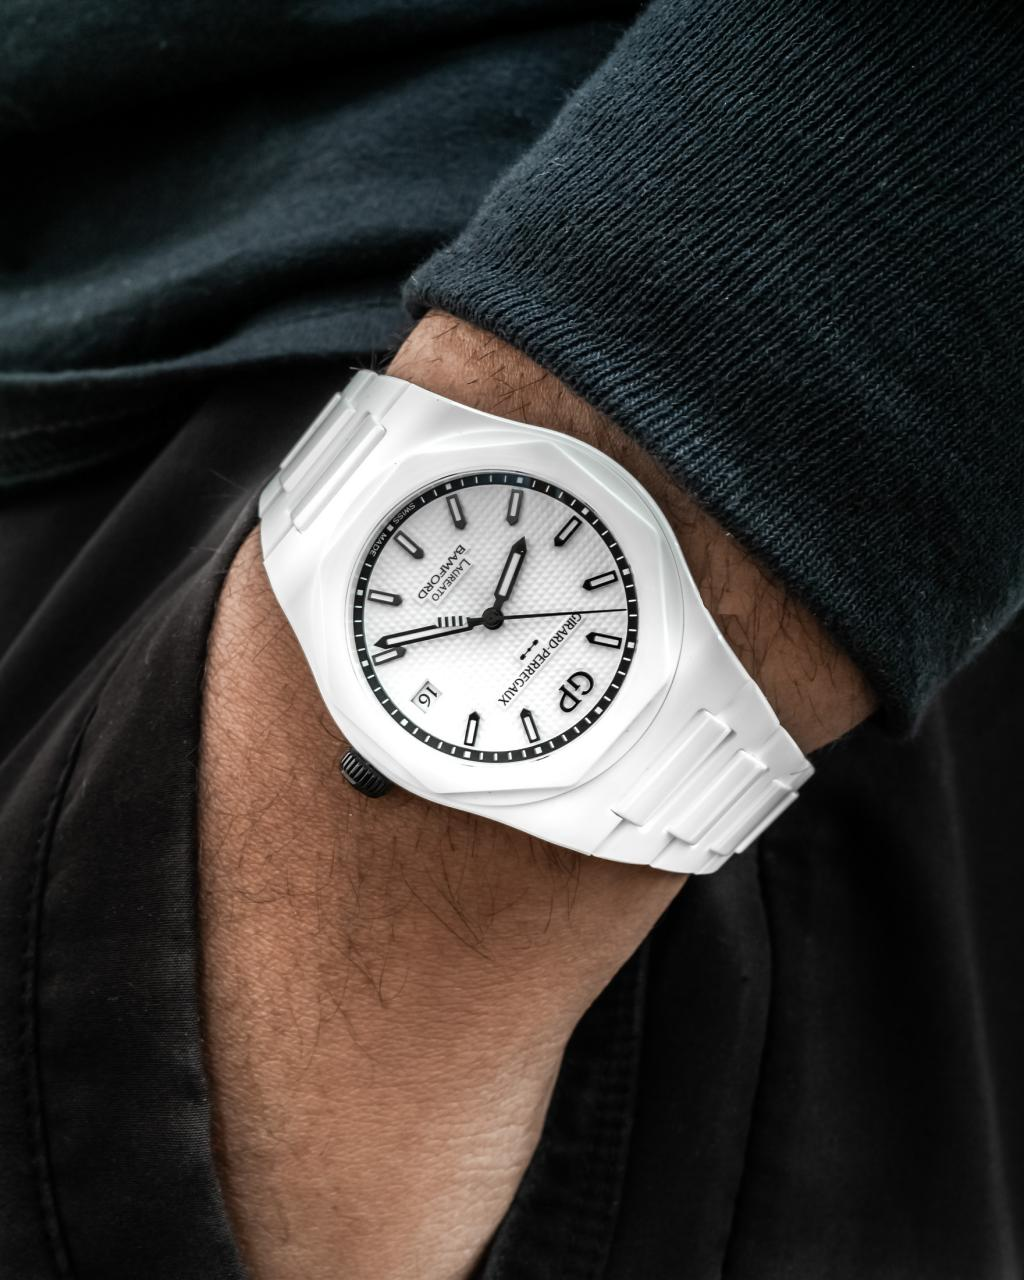 Girard-Perregaux & Bamford Debut Laureato 'Ghost' Limited Replica Watches Edition In All-White Ceramic